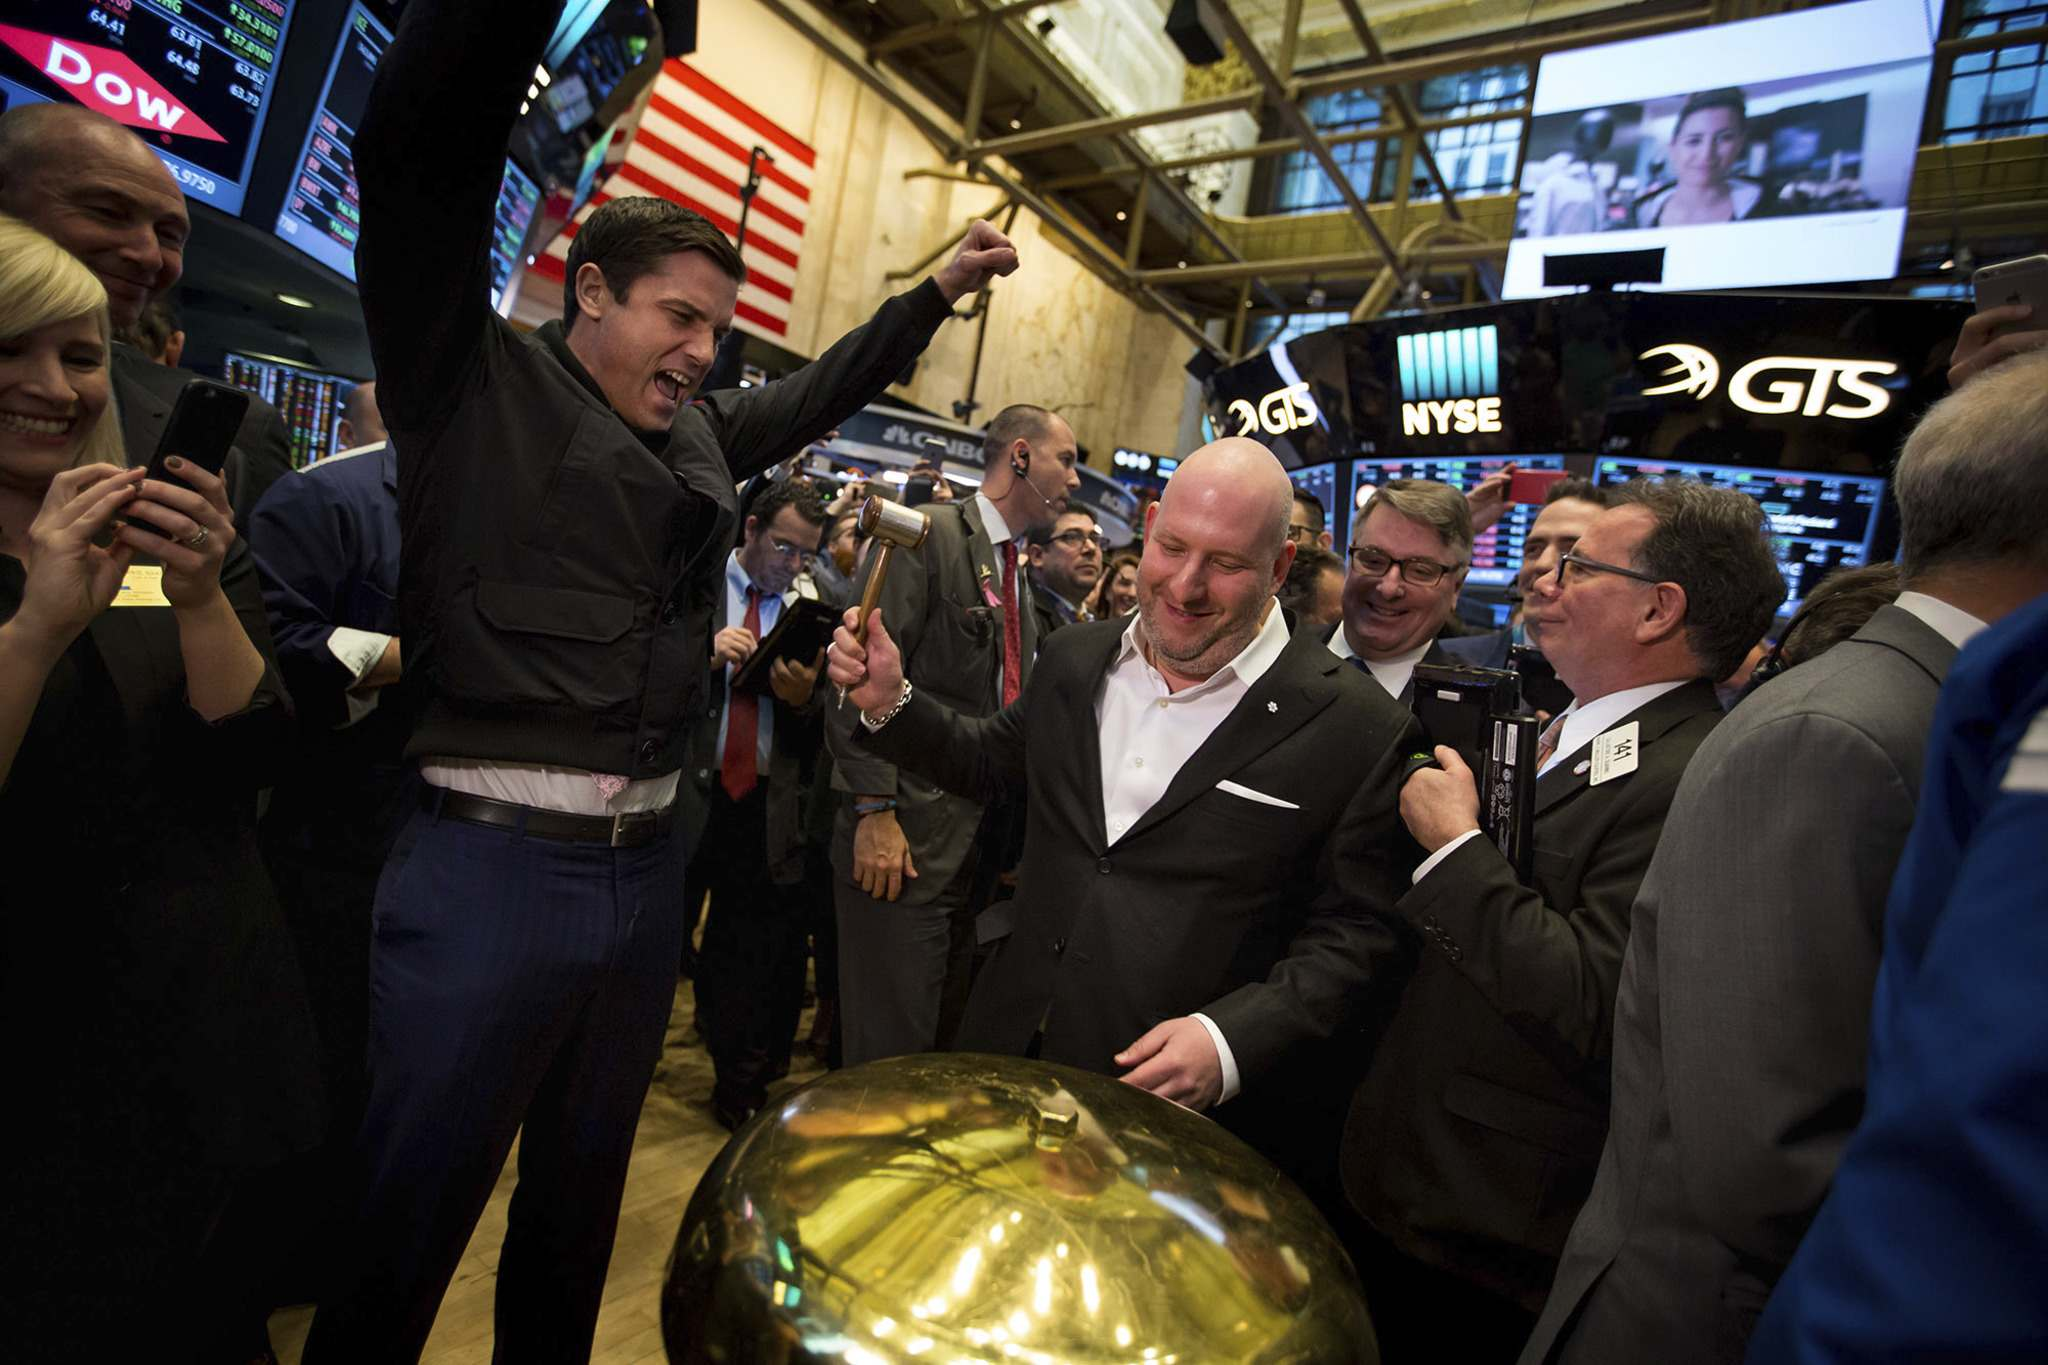 Michael Nagle / Bloomberg</p><p>Dani Reiss (centre), chief executive officer and president of Canada Goose Holdings, rings a ceremonial bell as Tom Farley, president of the NYSE Group, left, cheers on the floor of the New York Stock Exchange during the company&rsquo;s initial public offering in New York on March 16, 2017.</p>